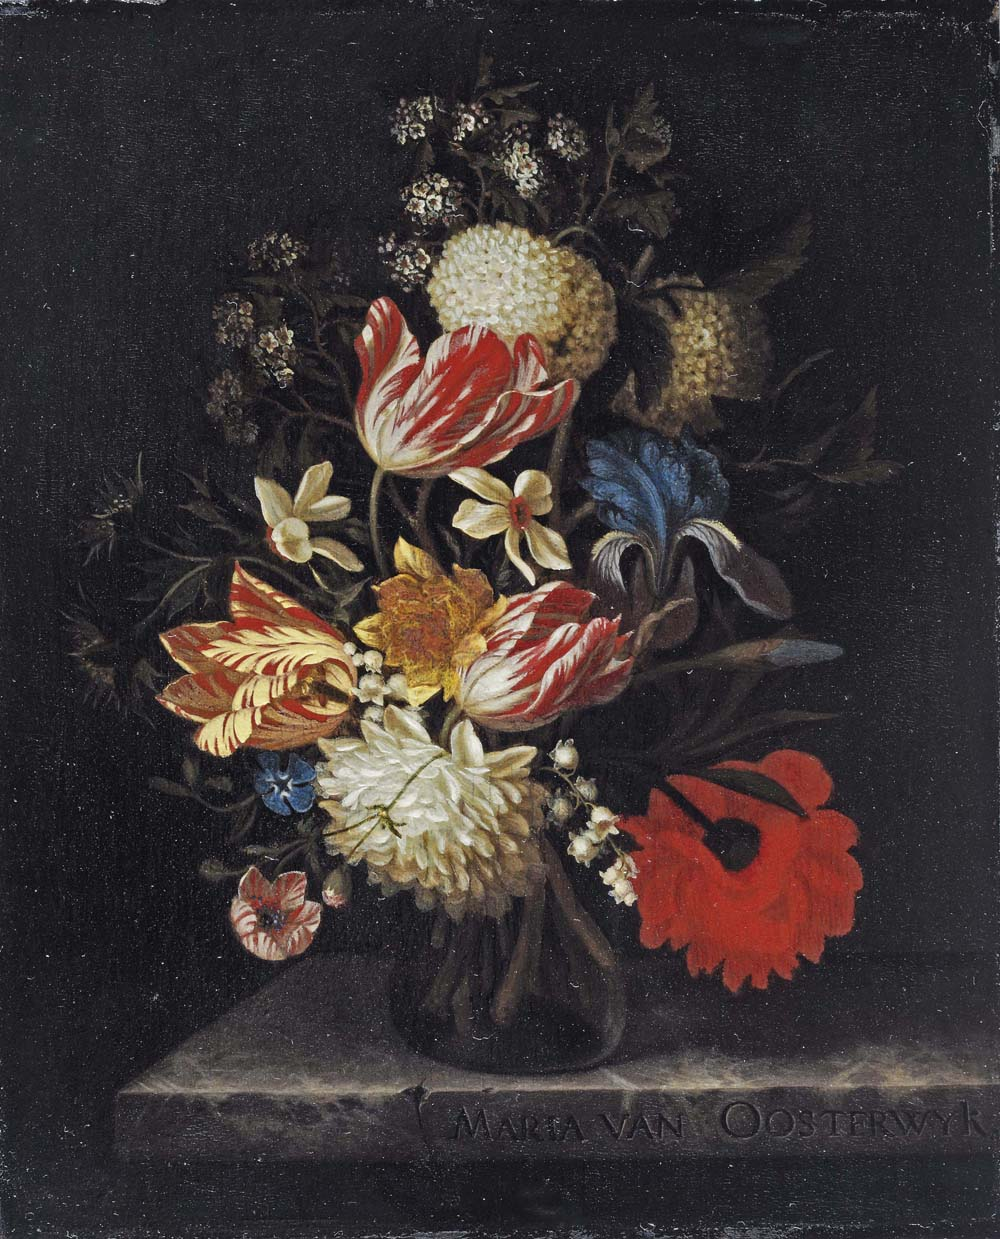 Tulips, lilies, roses, an iris and other flowers in a glass vase, on a marble ledge